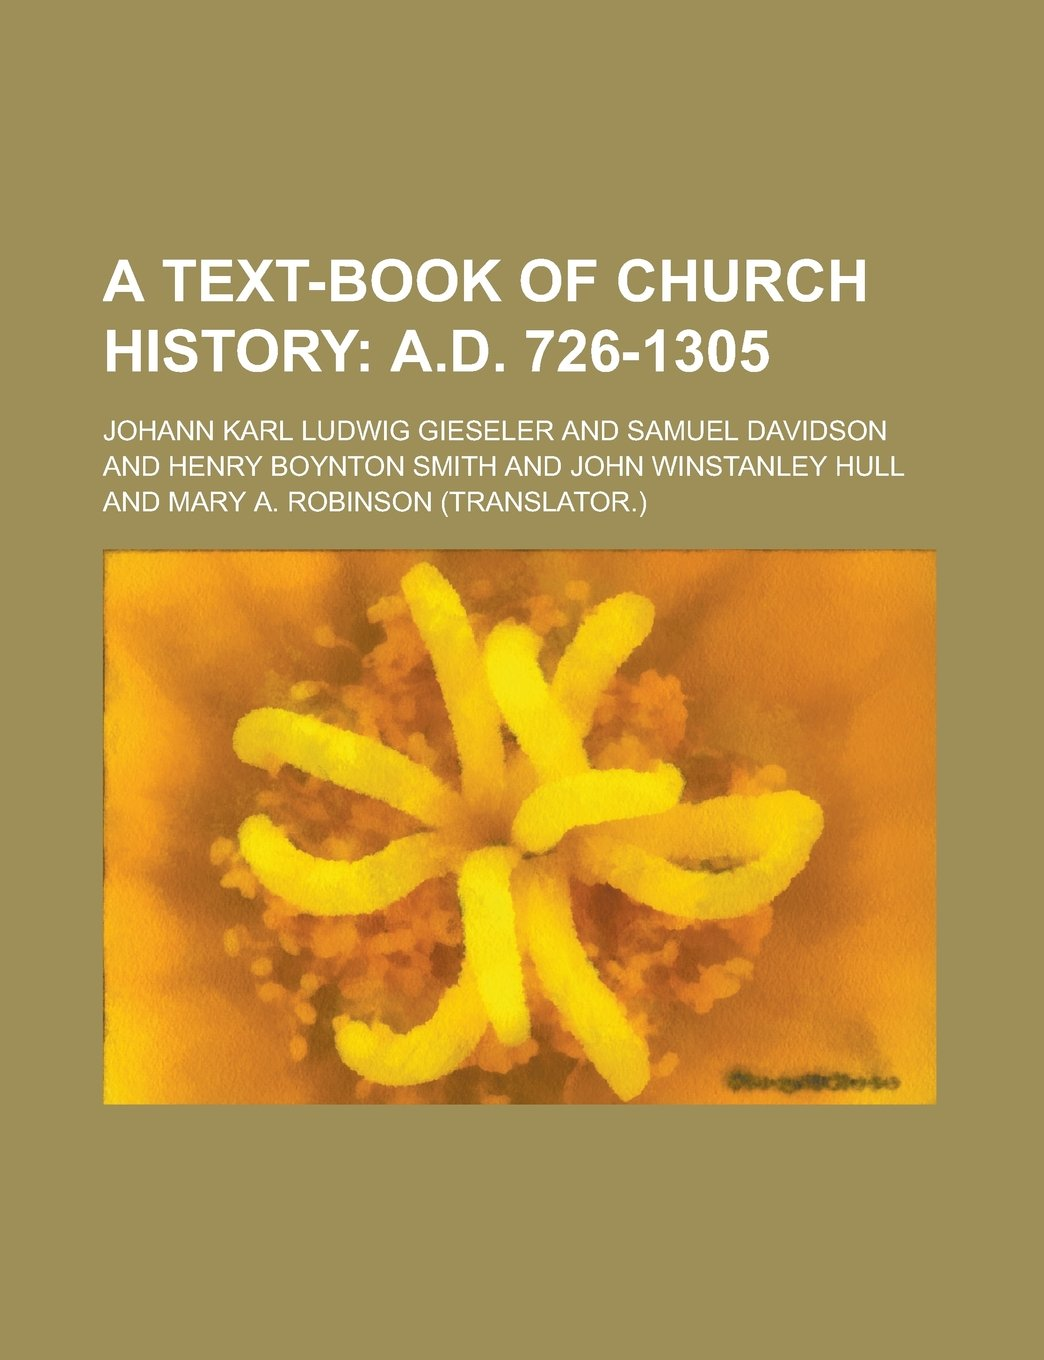 A Text-book of Church History ebook